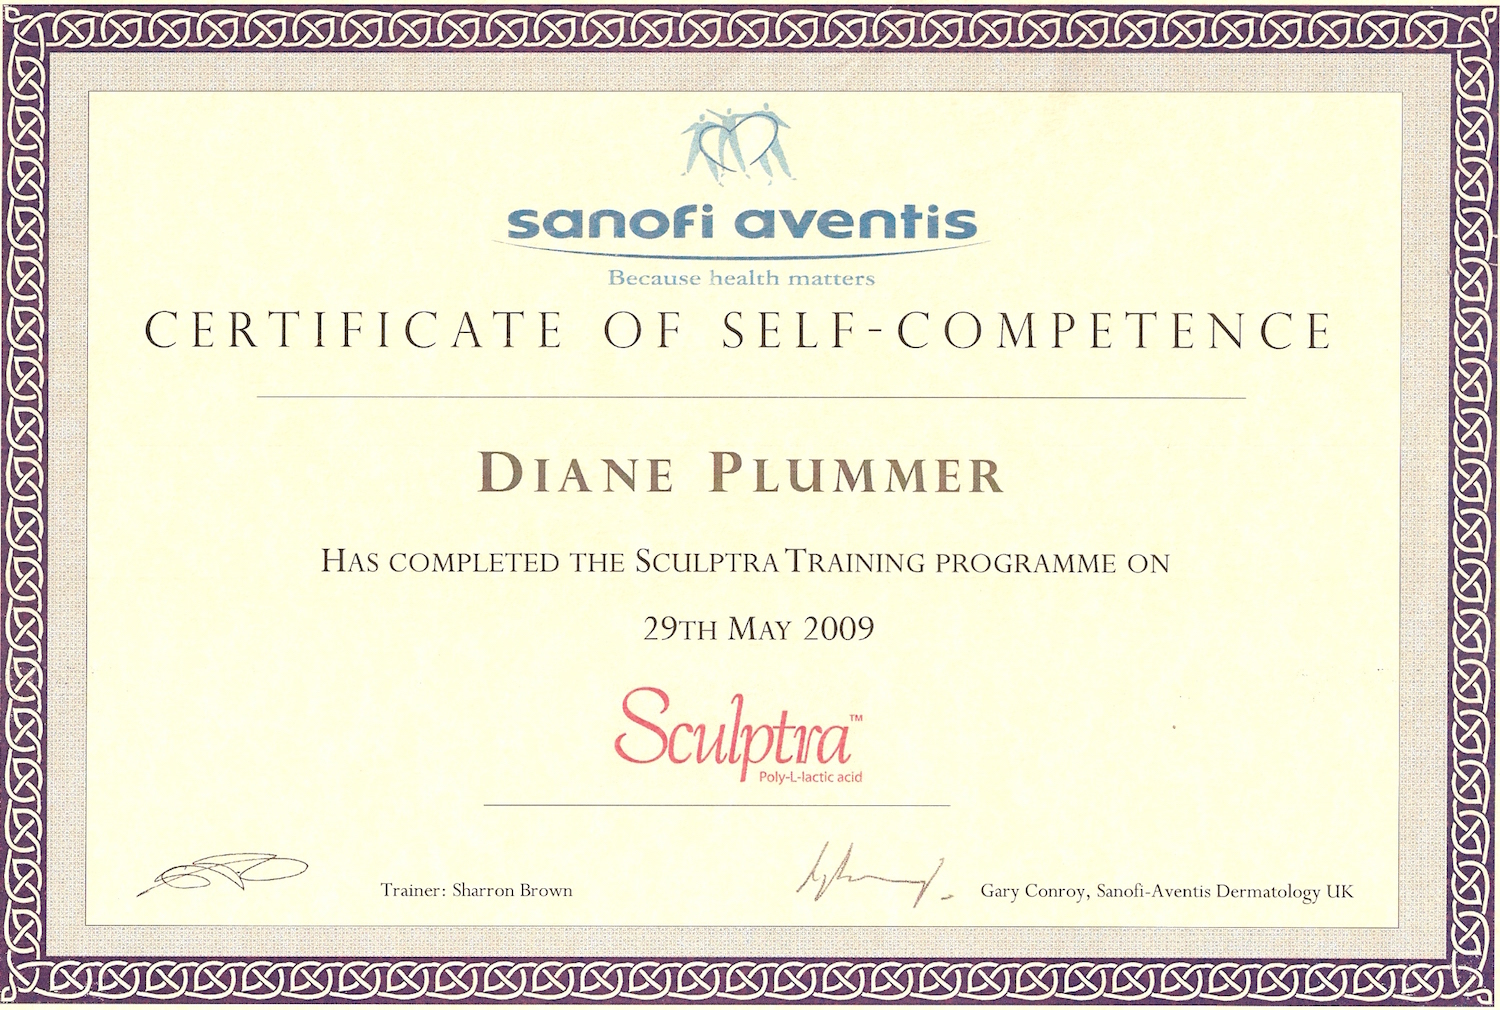 Sculptra training programme successfully completed by Diane Plummer - Revive Aesthetics